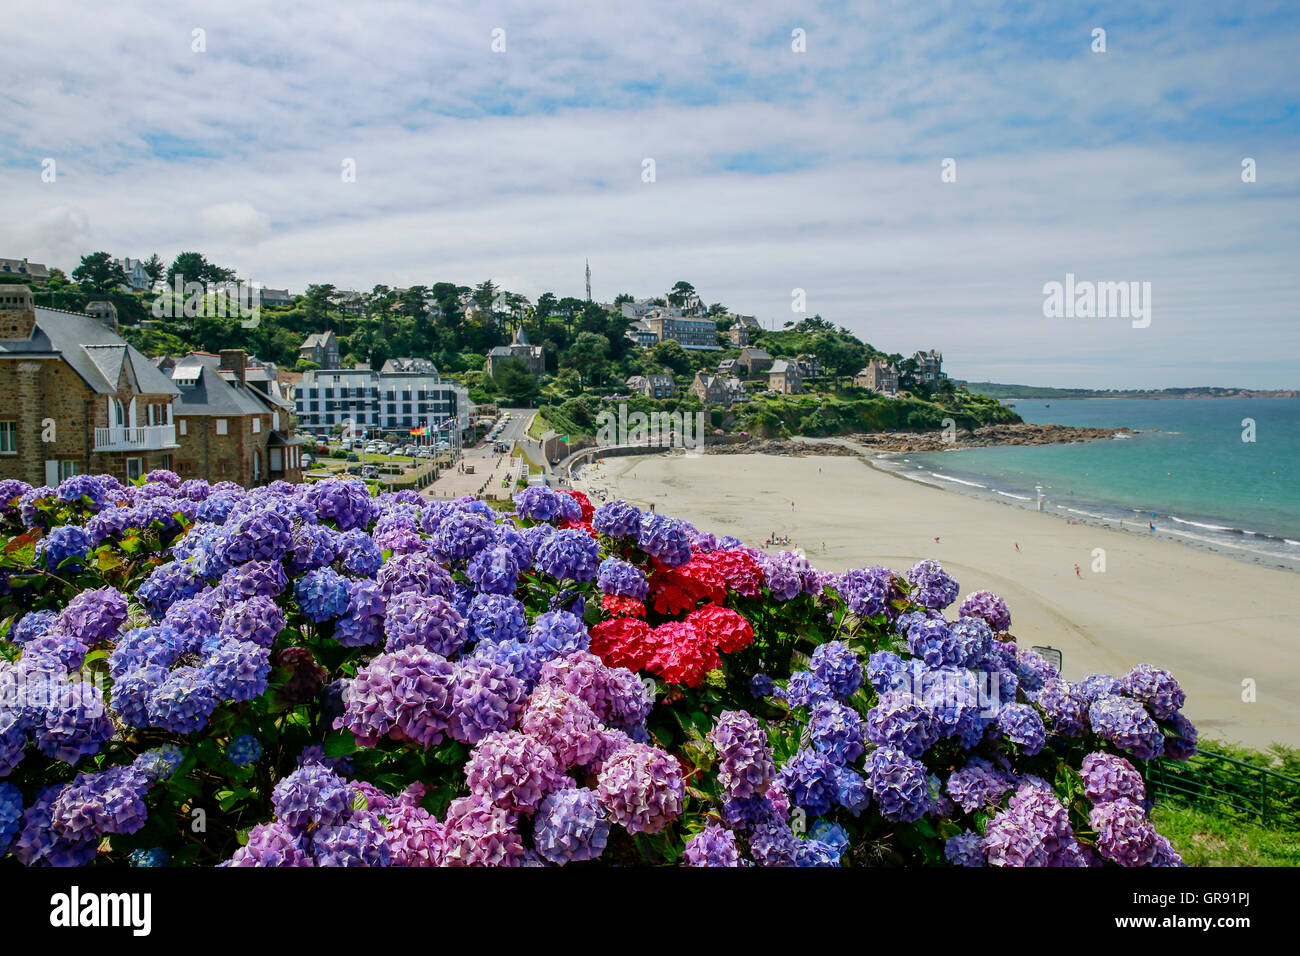 Beach At Perros-Guirec, Brittany, France Stock Photo